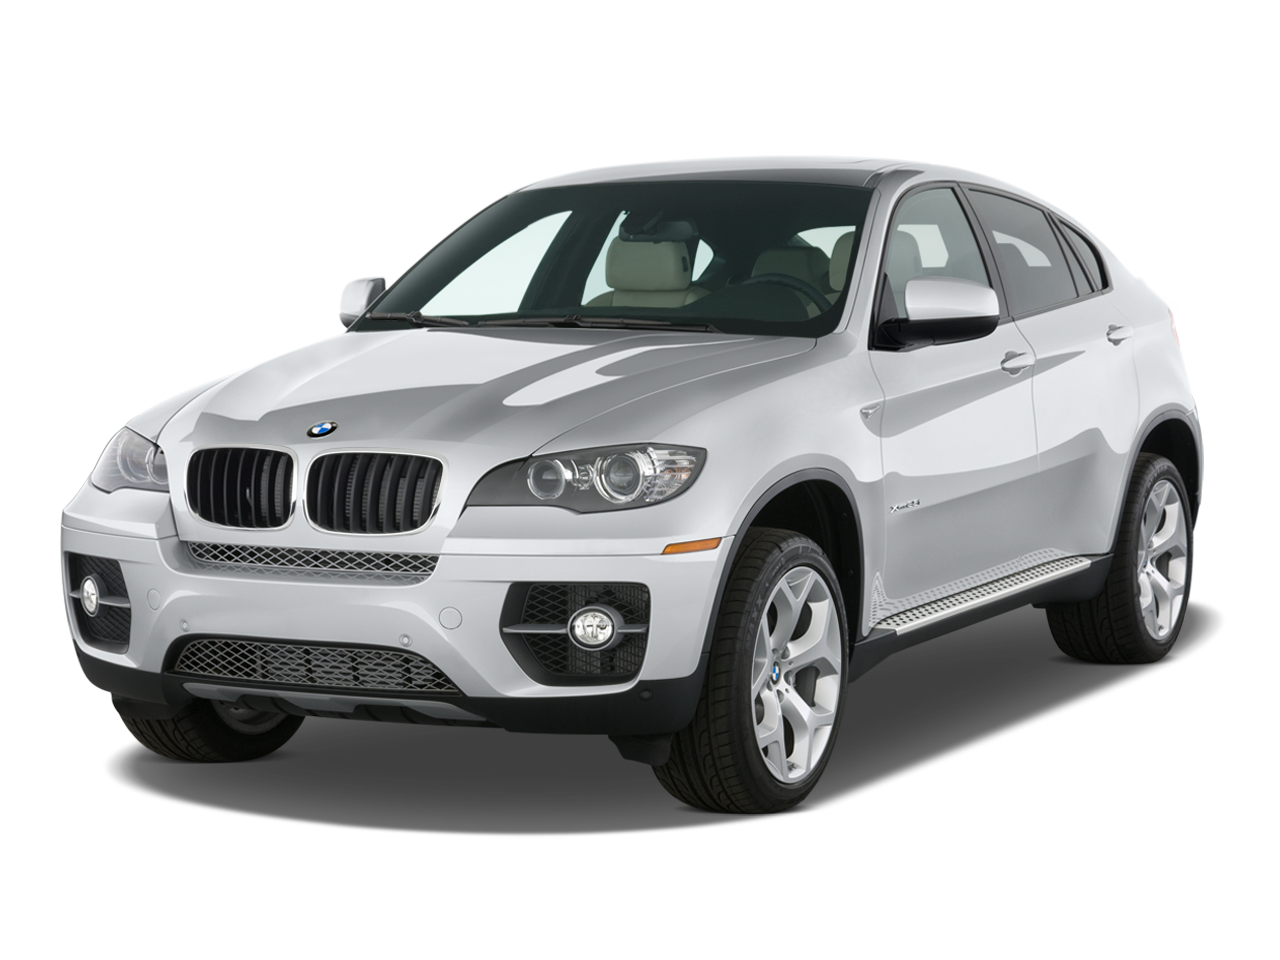 2009 bmw x6 xdrive50i bmw luxury crossover suv review. Black Bedroom Furniture Sets. Home Design Ideas